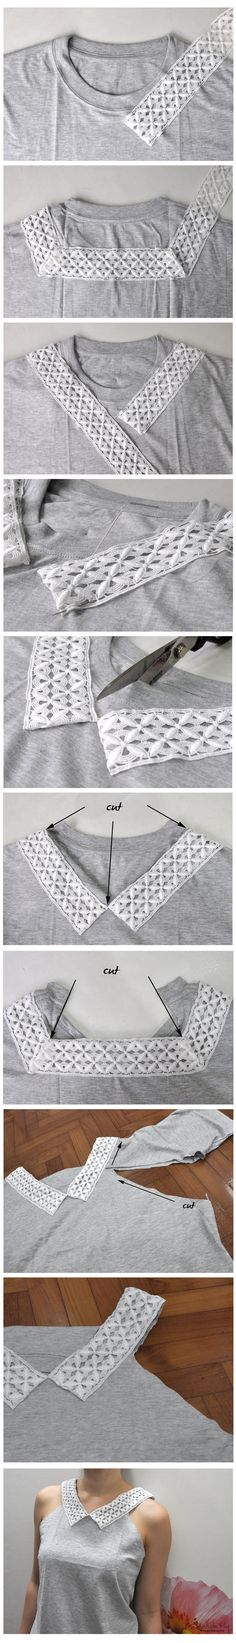 upcycle a plain old tee shirt